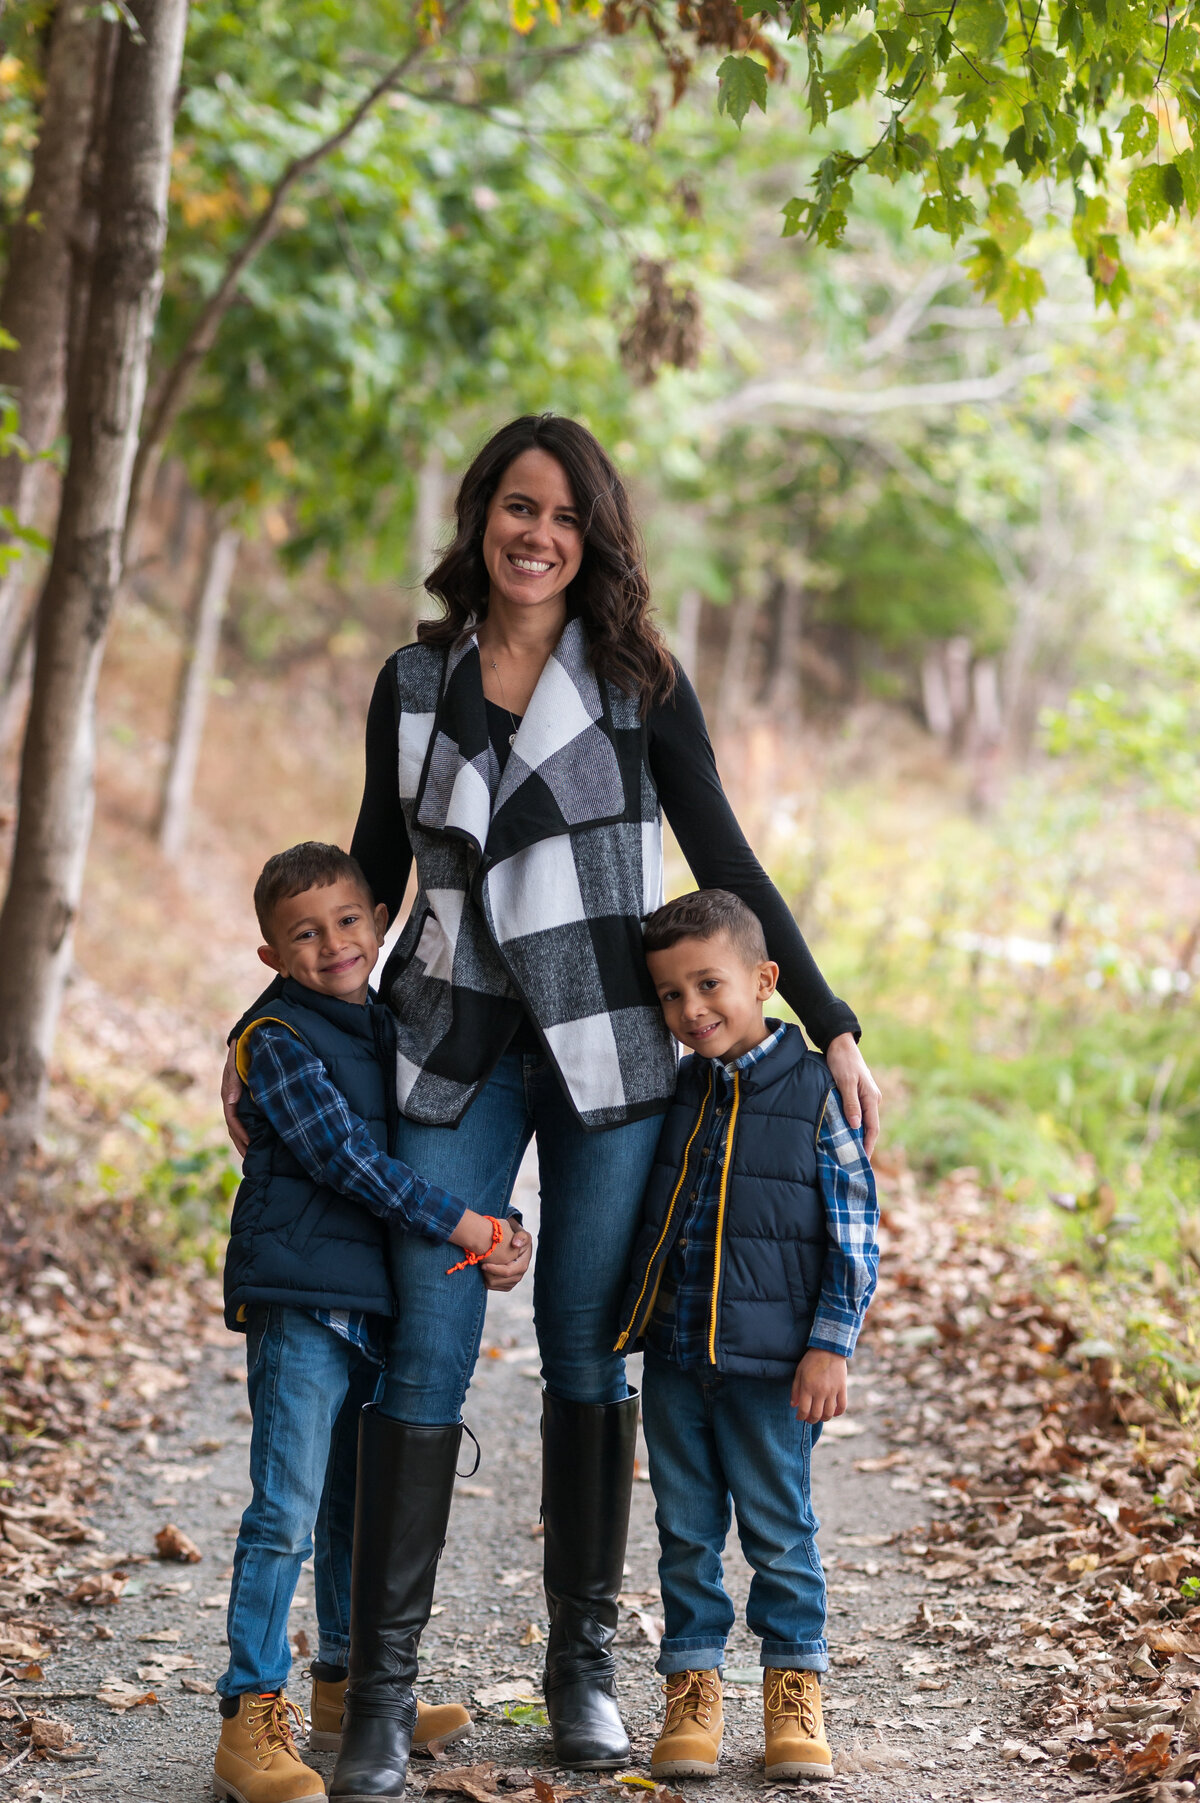 Wendy_Zook_Family_Photography_Lacayo_5